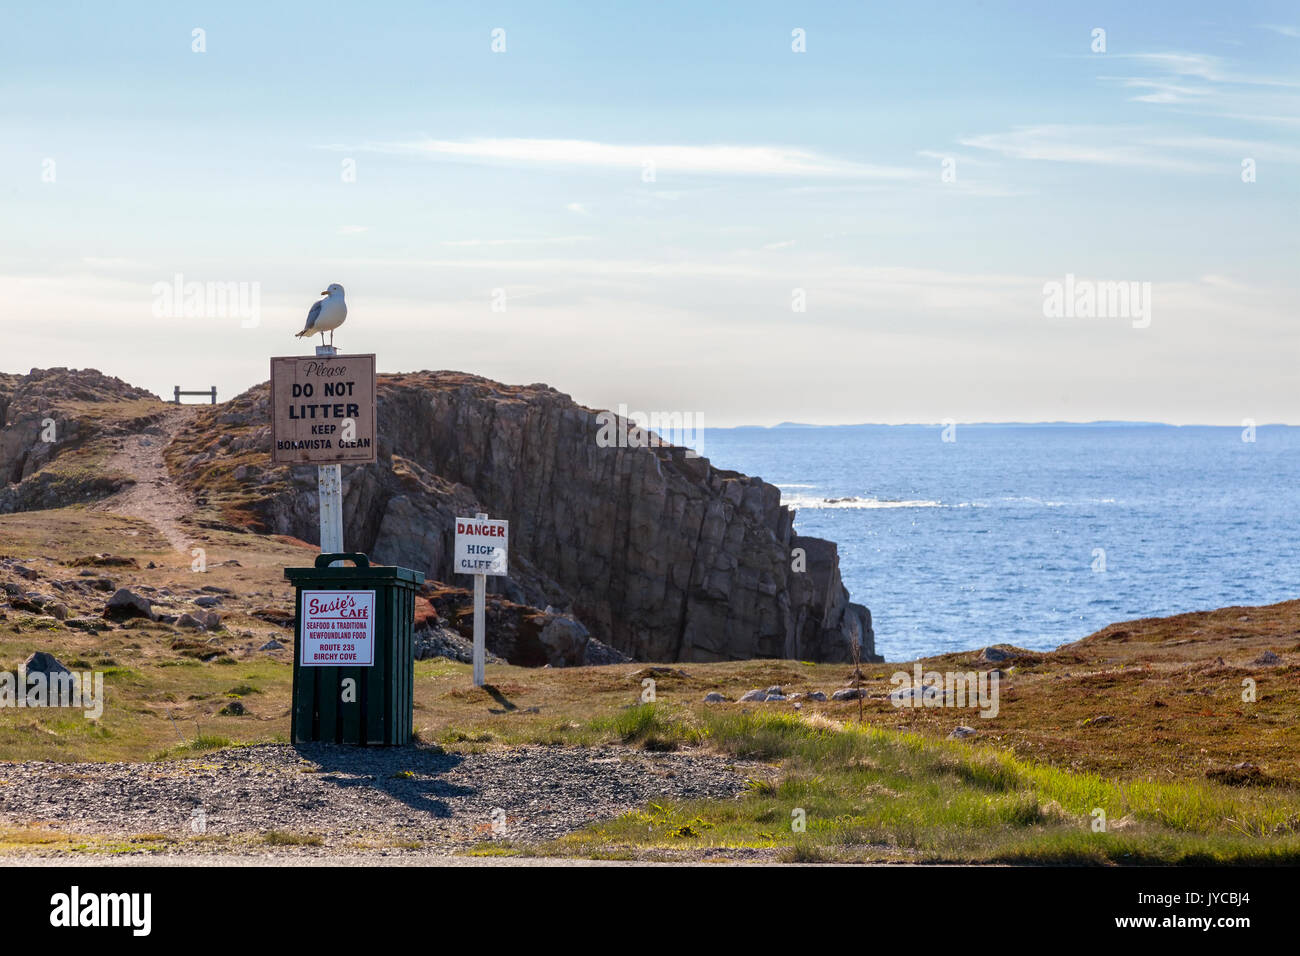 A seagull standing on a do not litter sign with a view of the rocky landscape and the Atlantic Ocean in Bonavista,, Newfoundland and Labrador, Canada. - Stock Image